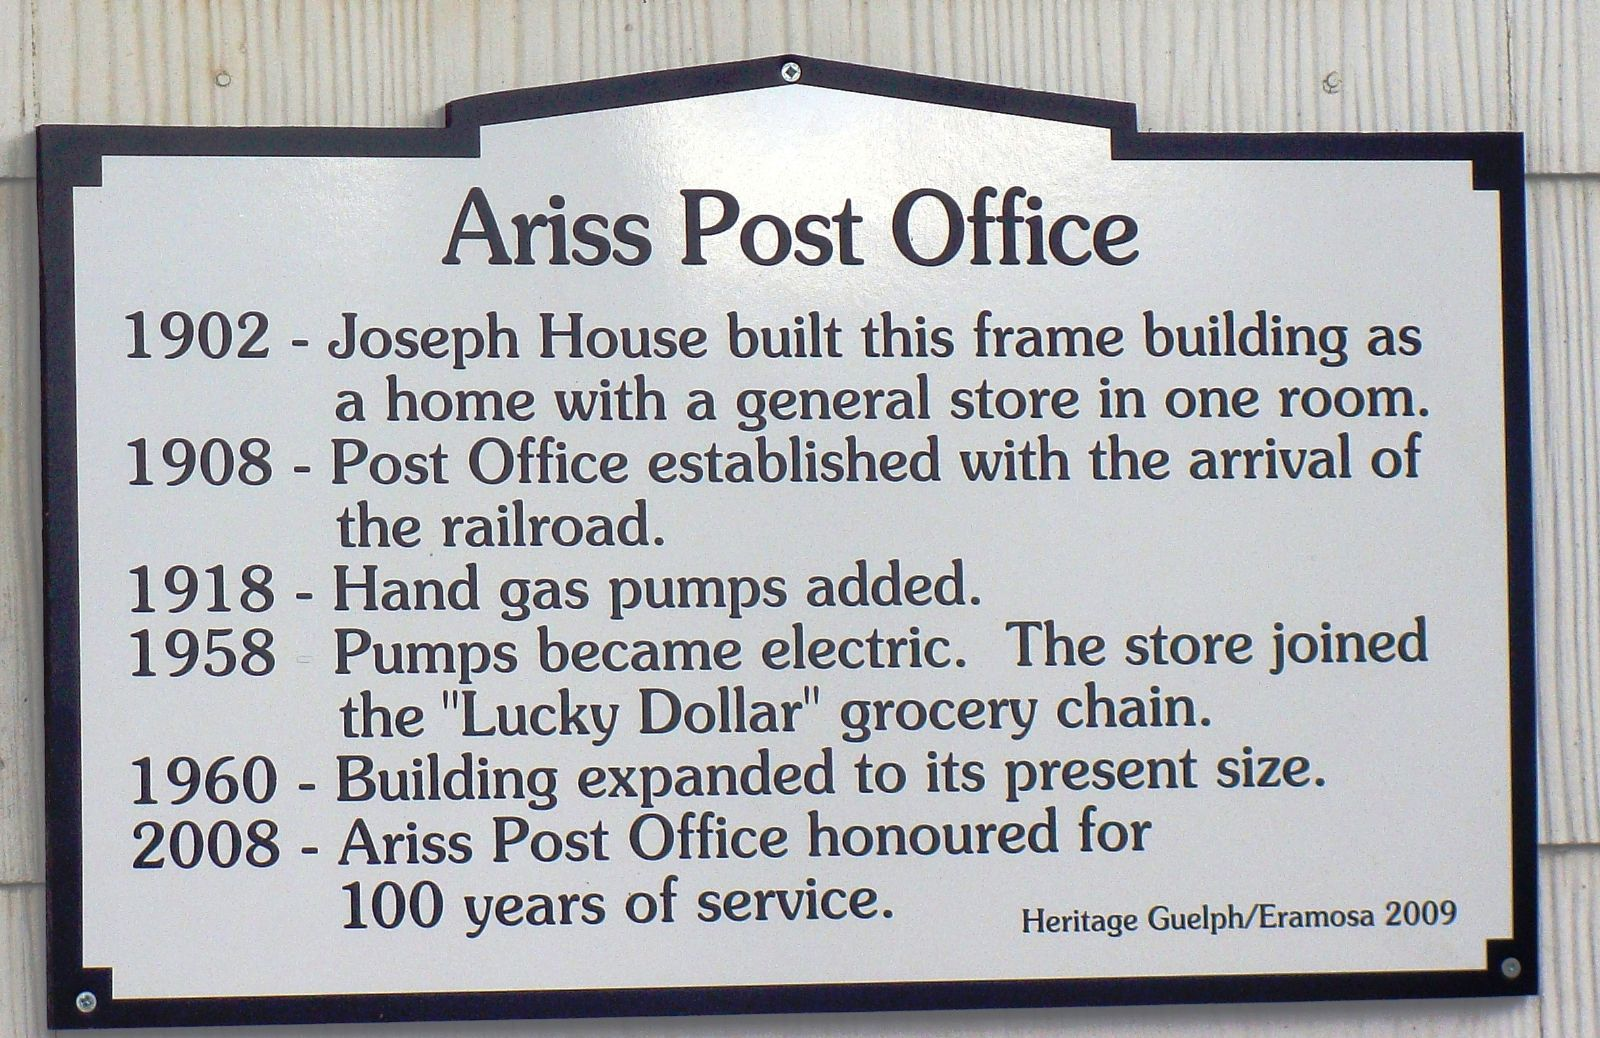 Photo of a Heritage Pride Plaque for the Ariss Post Office